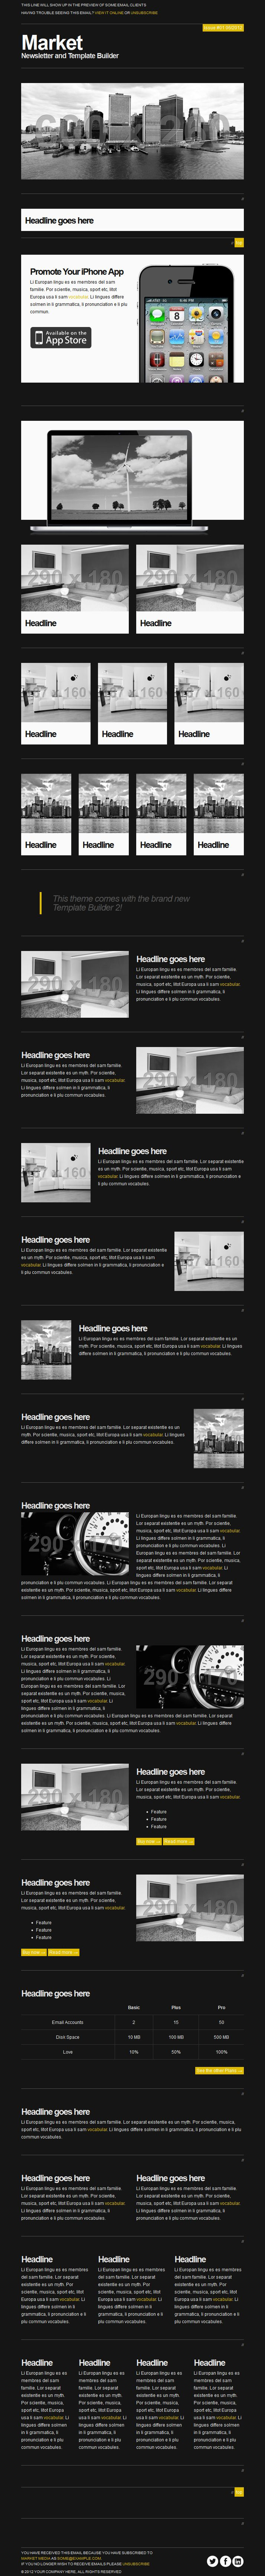 Market - Responsive Newsletter with Template Builder by EverPress ...